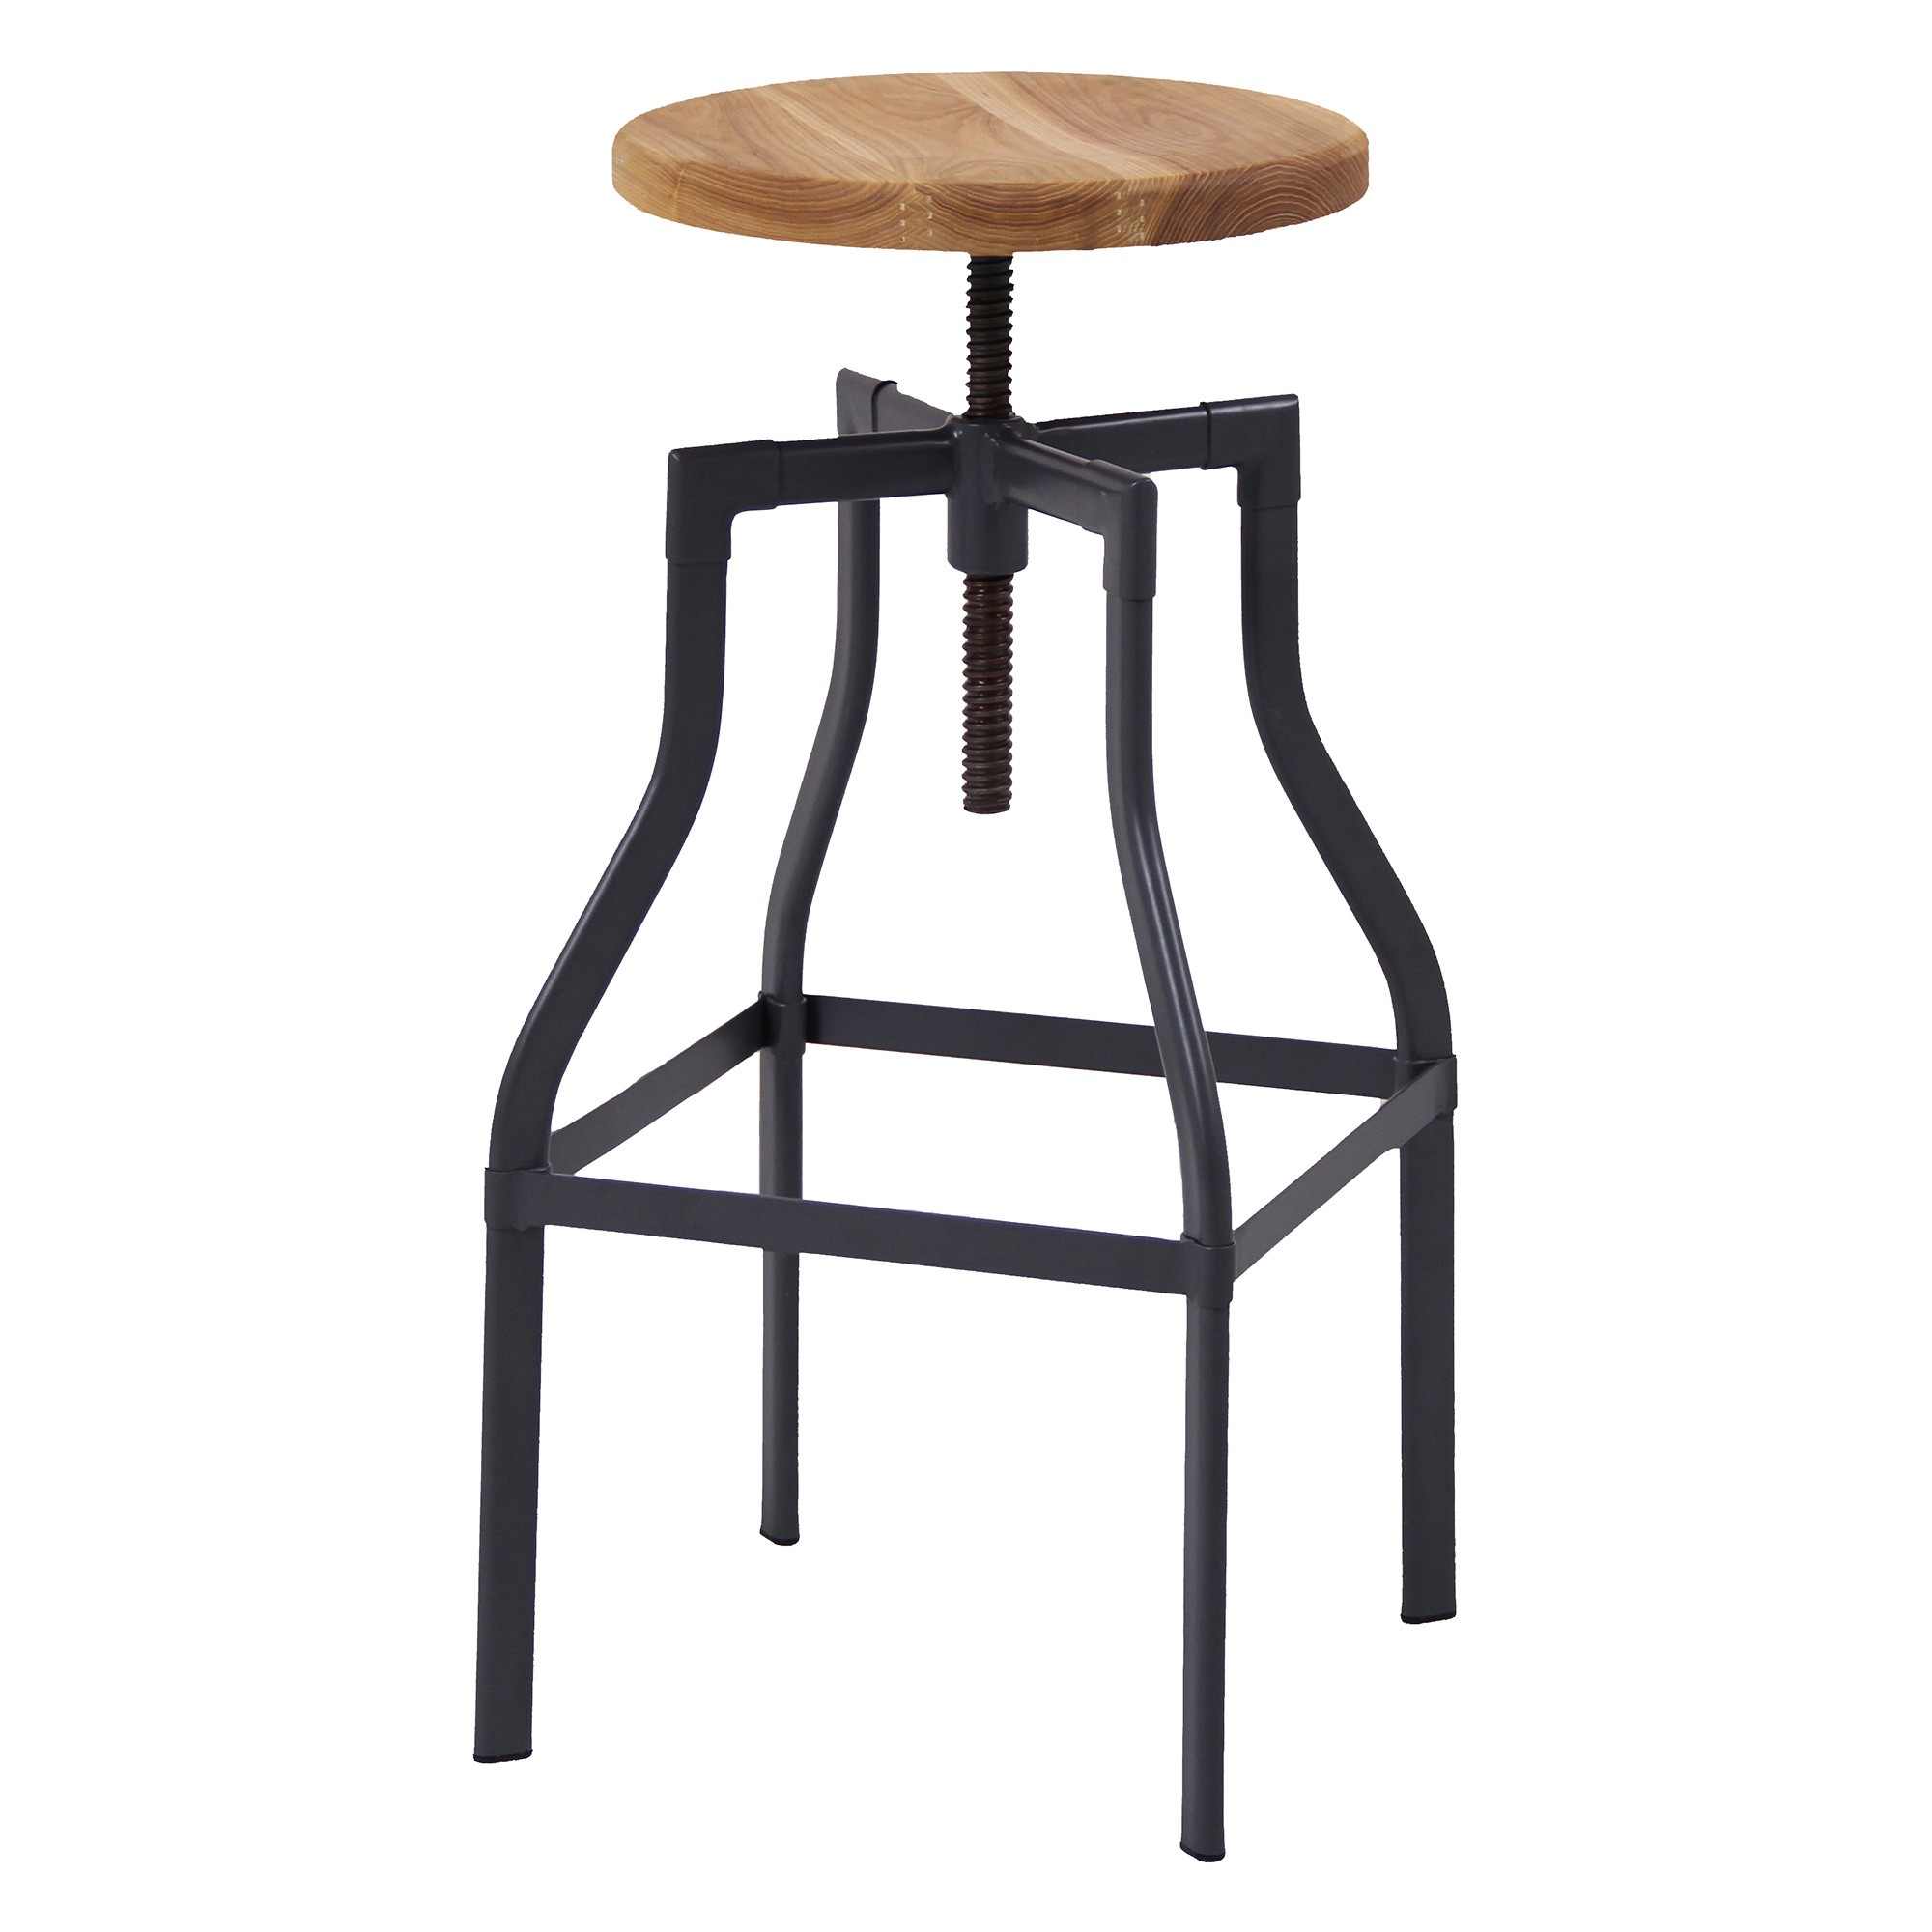 Stella Commercial Grade Industrial Adjustable Steel Counter / Bar Stool